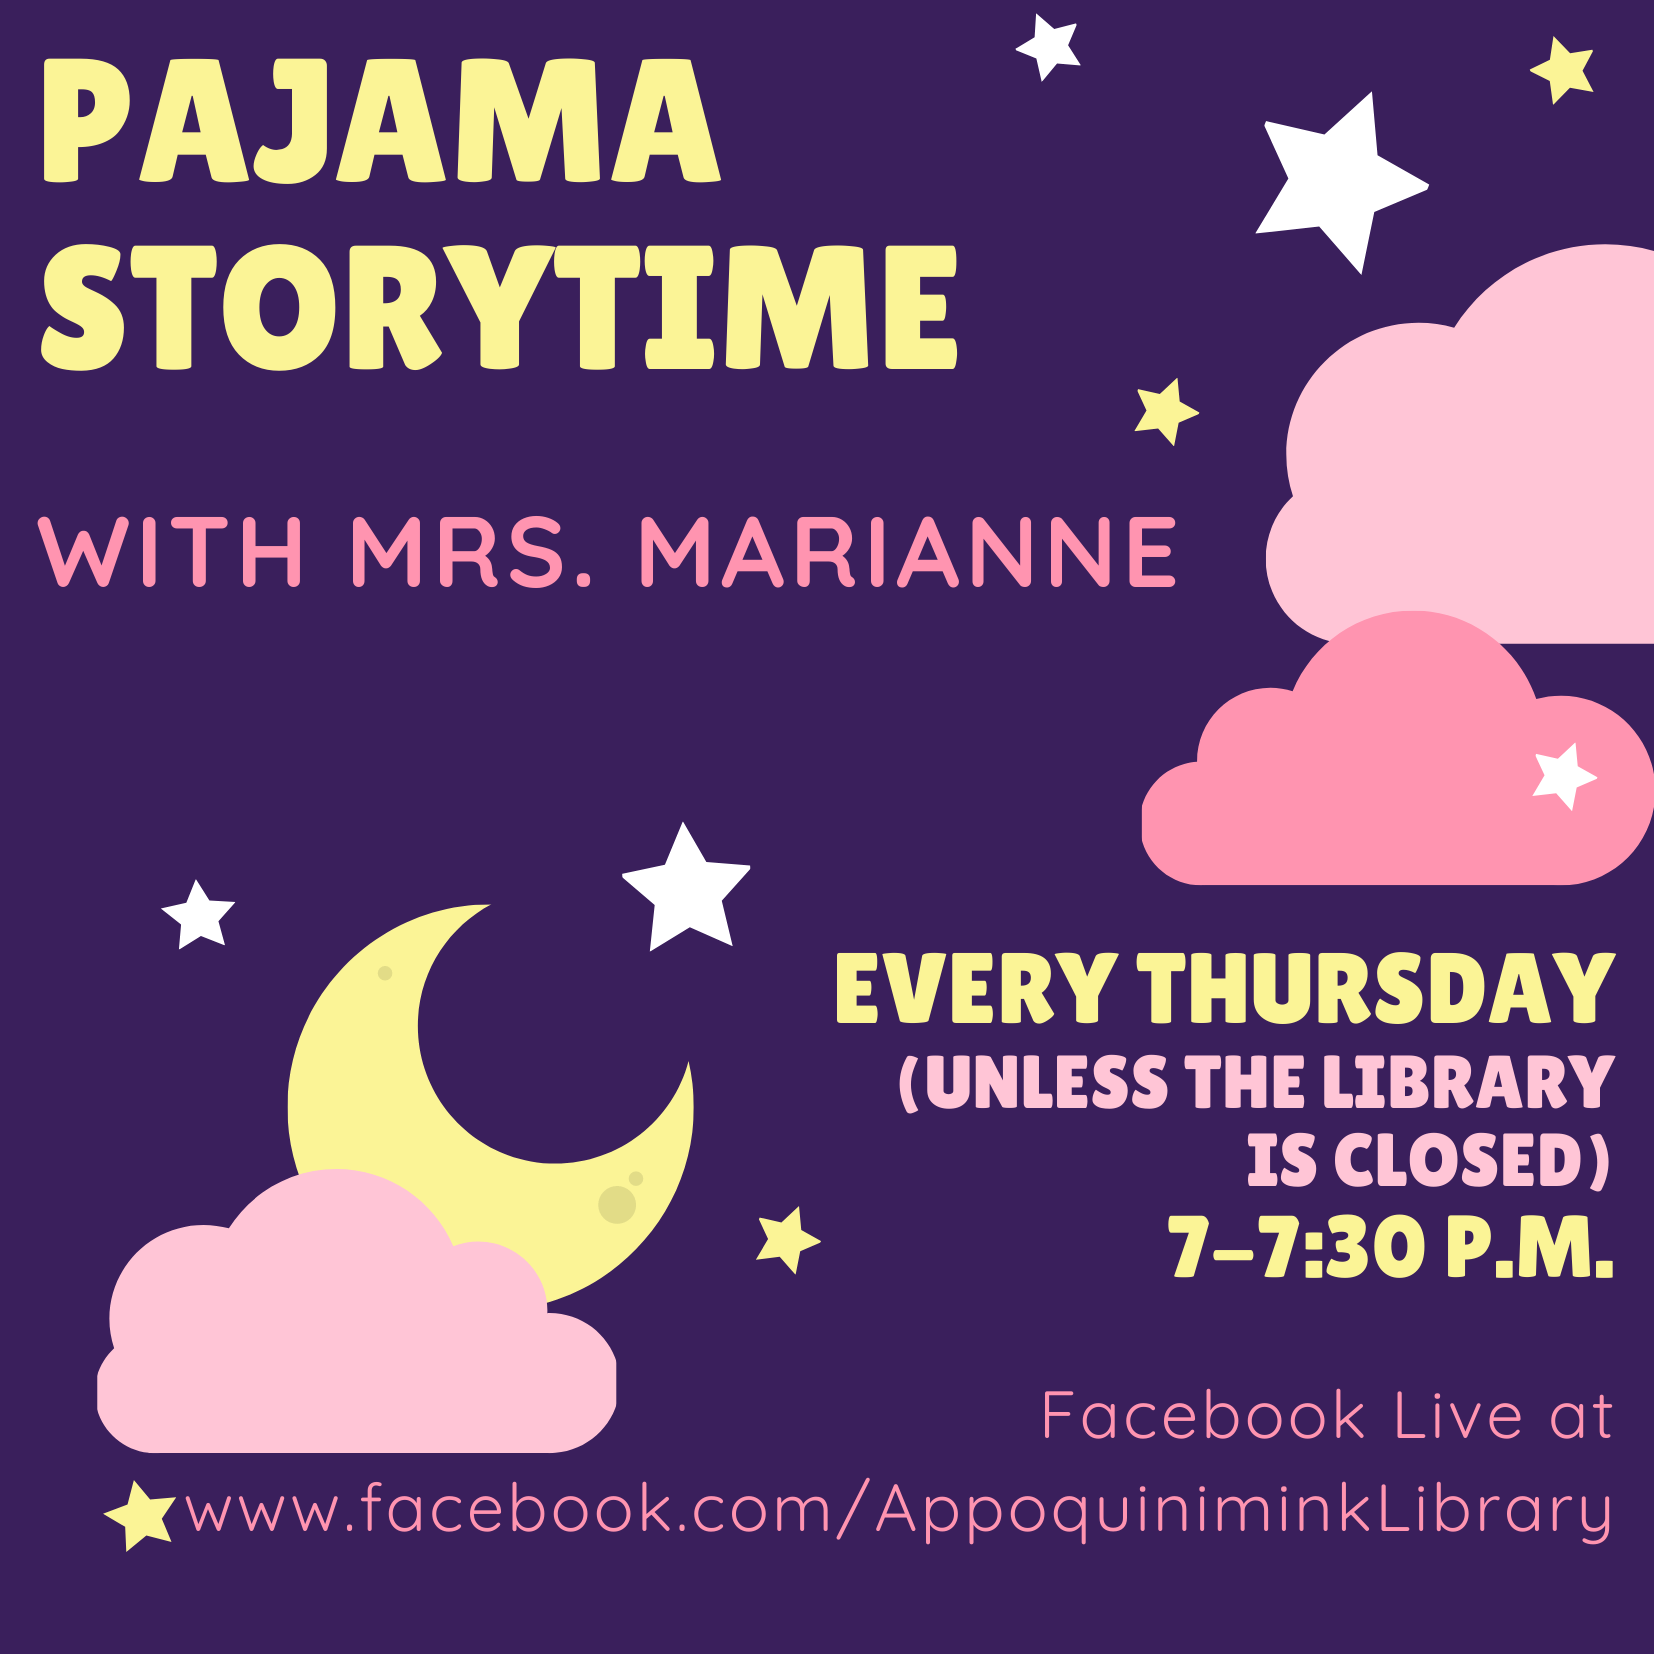 Pajama Storytime with Mrs. Marianne